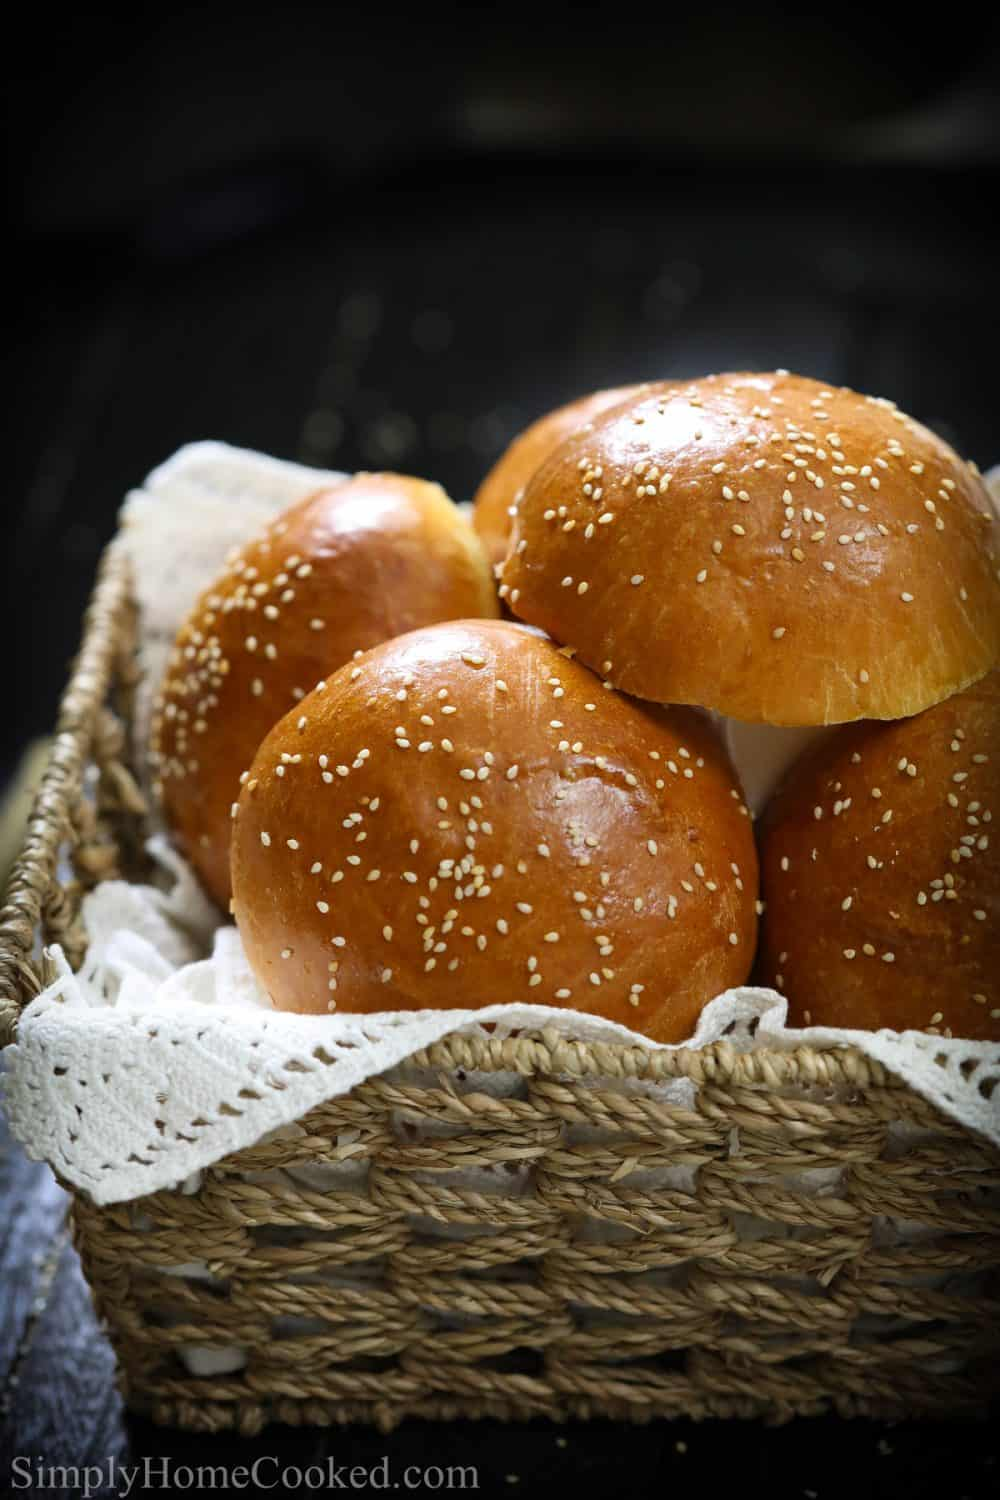 brioche buns in a basket